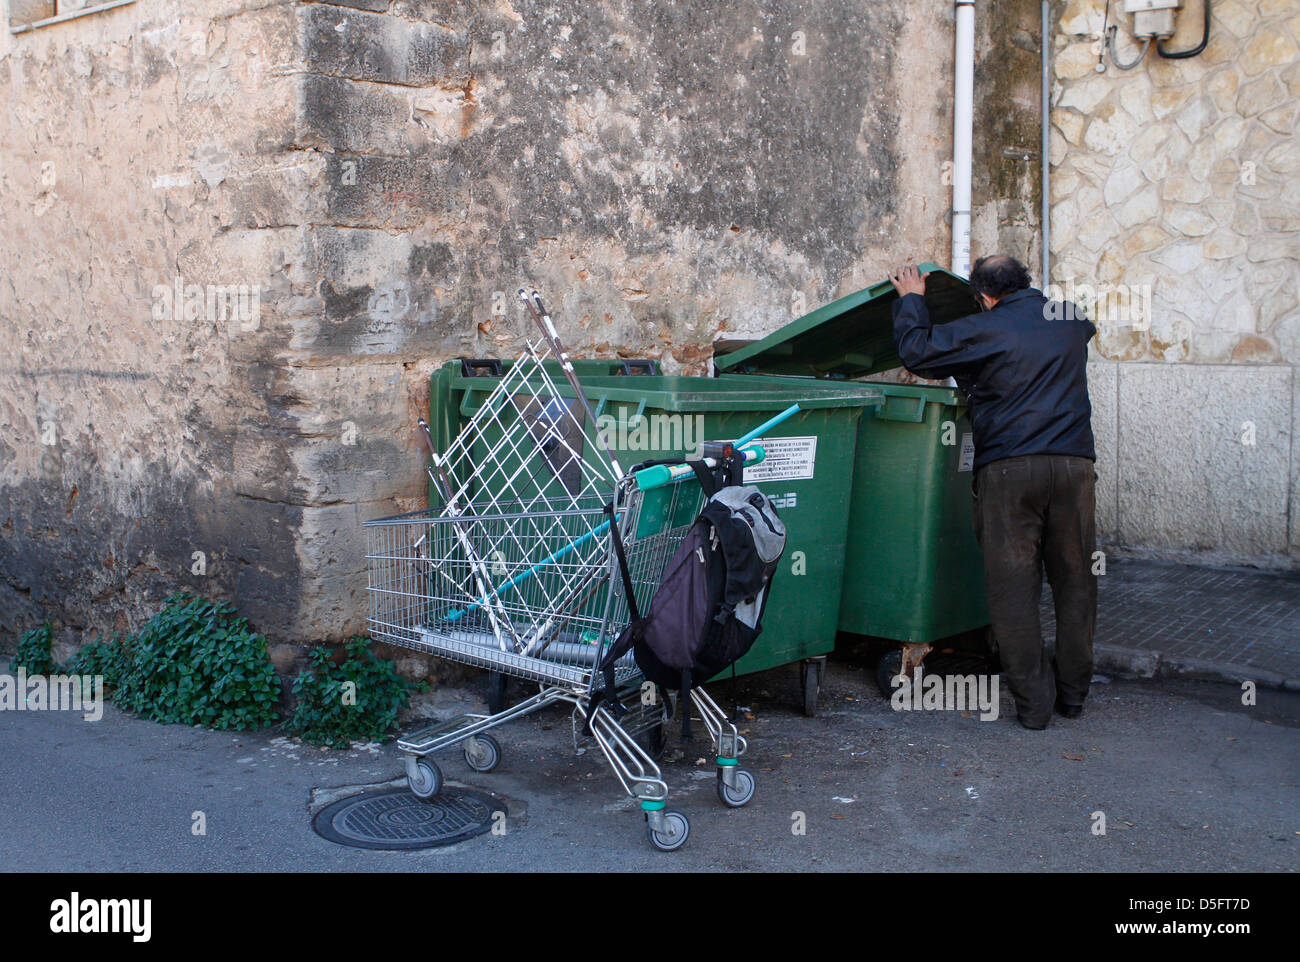 A jobless man pulls a trolley to carry the junk found on the bins. - Stock Image